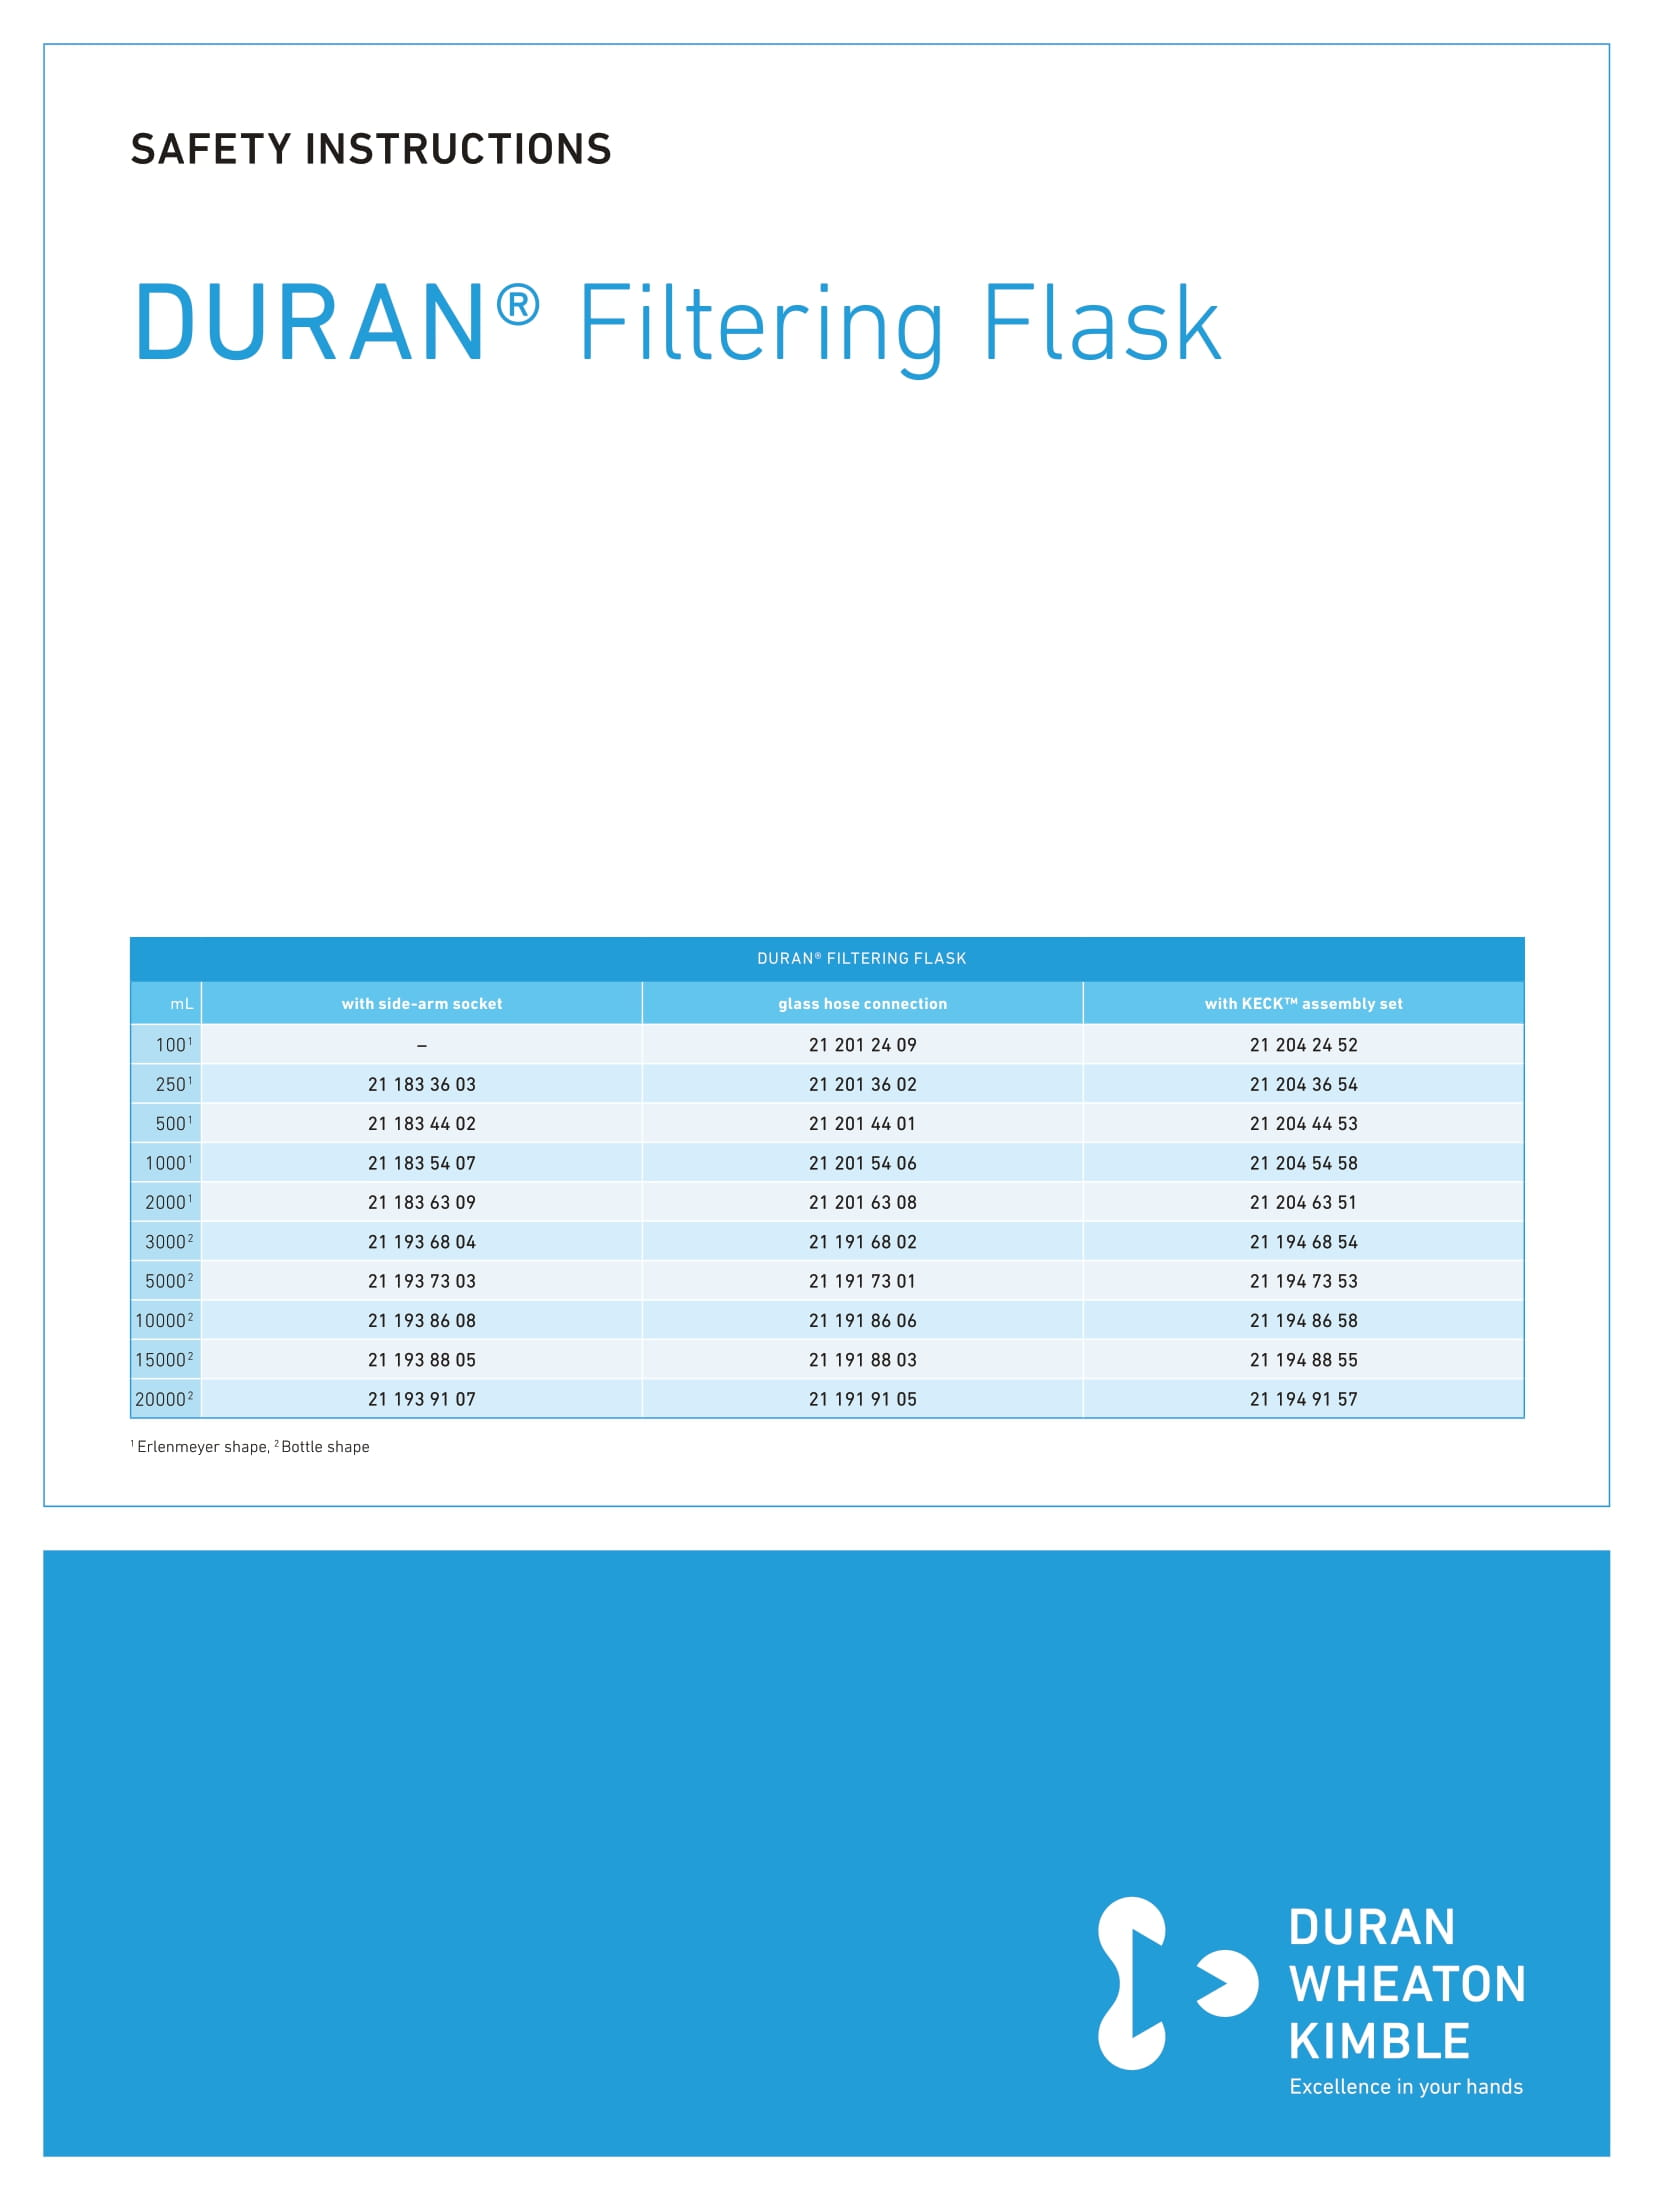 DWK SAFETY INSTRUCTIONS DURAN® Filtering Flask